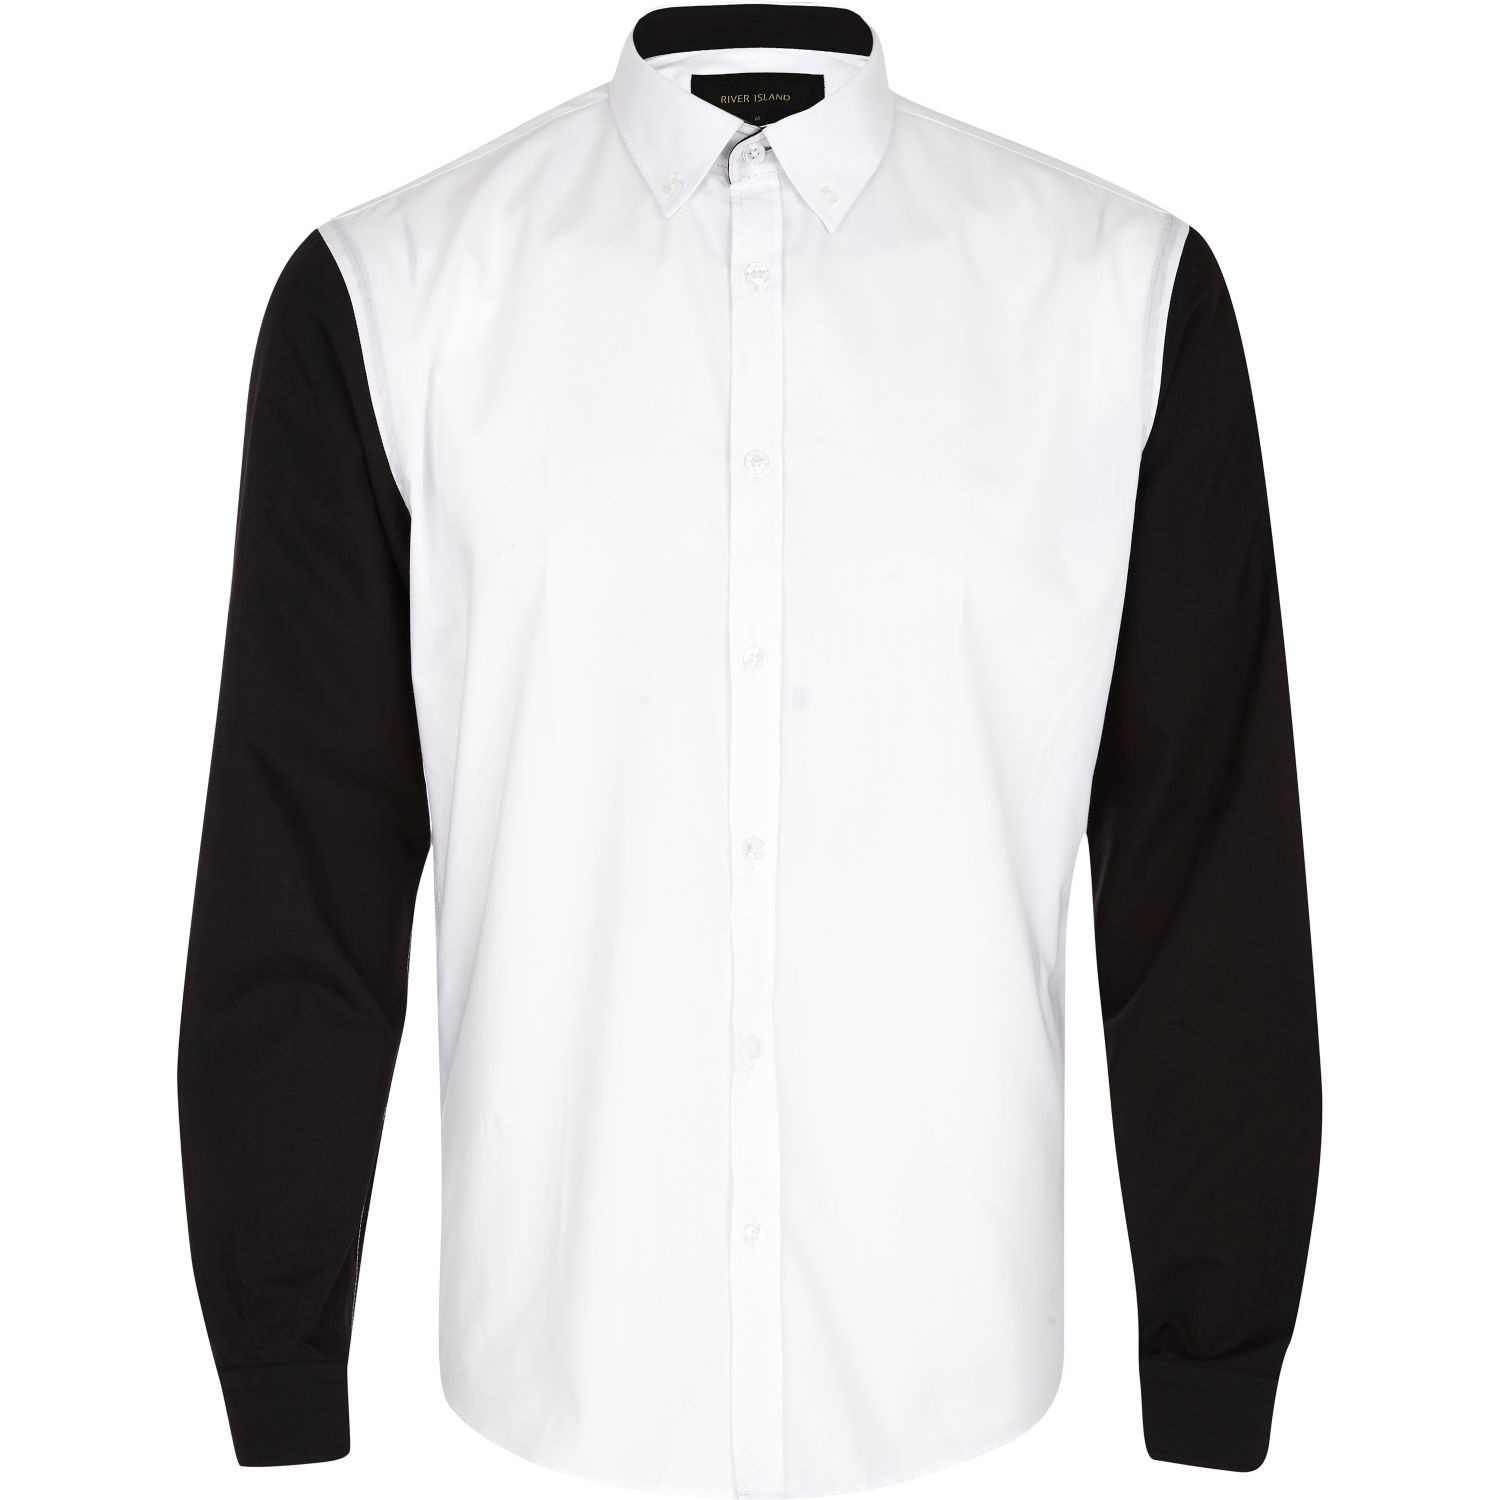 white shirt with black sleeves | Gommap Blog